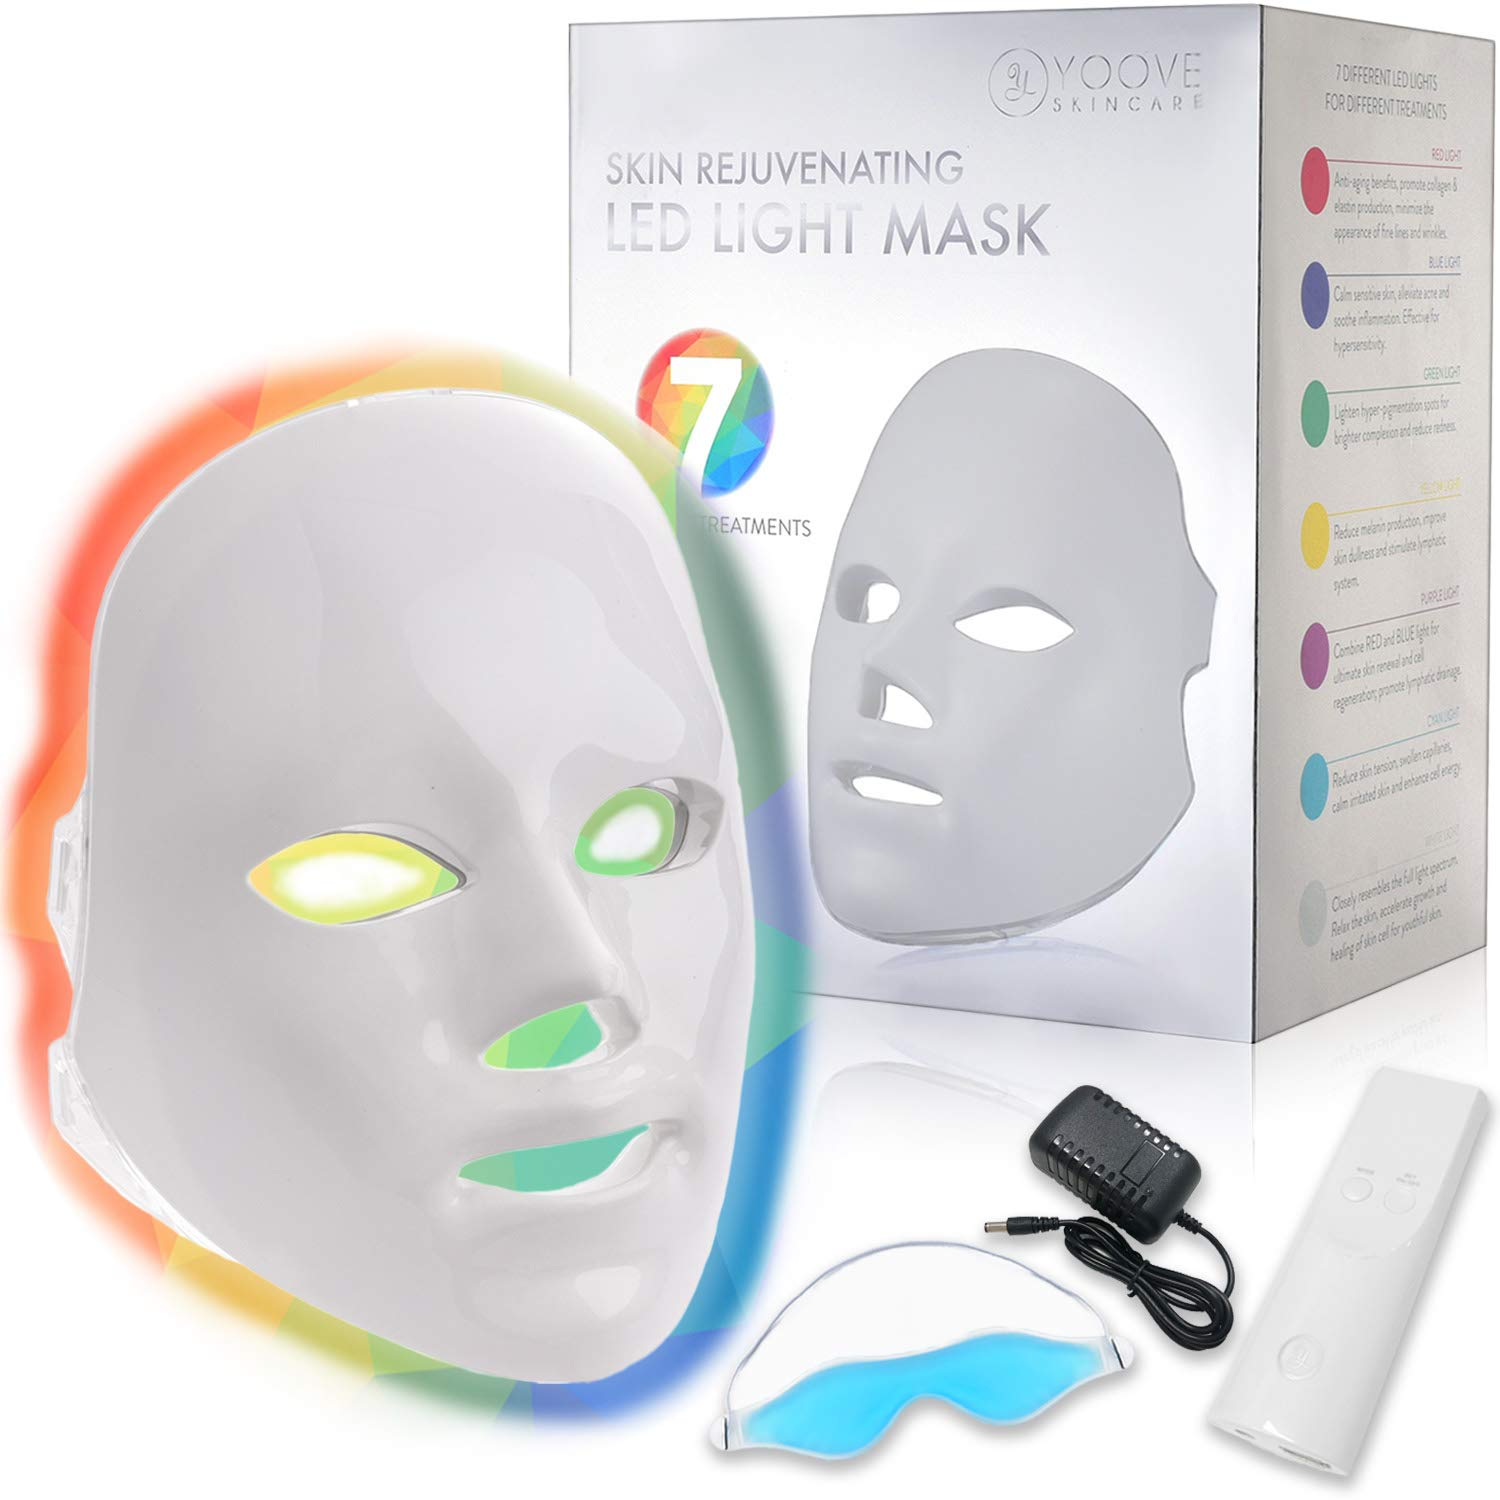 YOOVE LED Face Mask - 7 Colors Including Red Light Therapy For Healthy Skin Rejuvenation